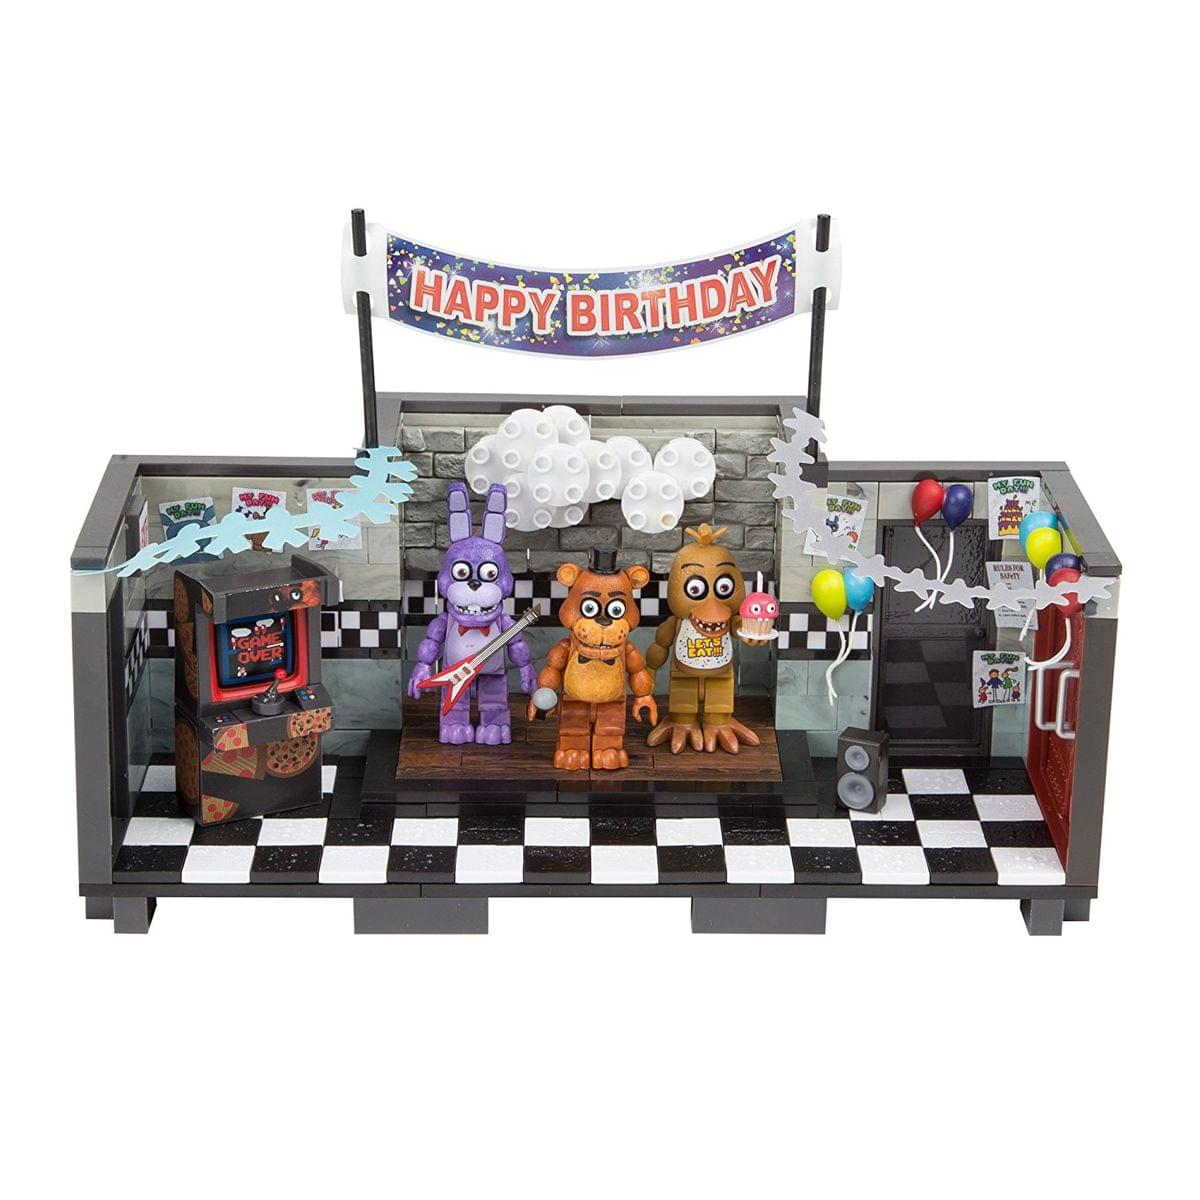 McFarlane Toys Five Nights at Freddy's The Show Stage Building Set - 314pc